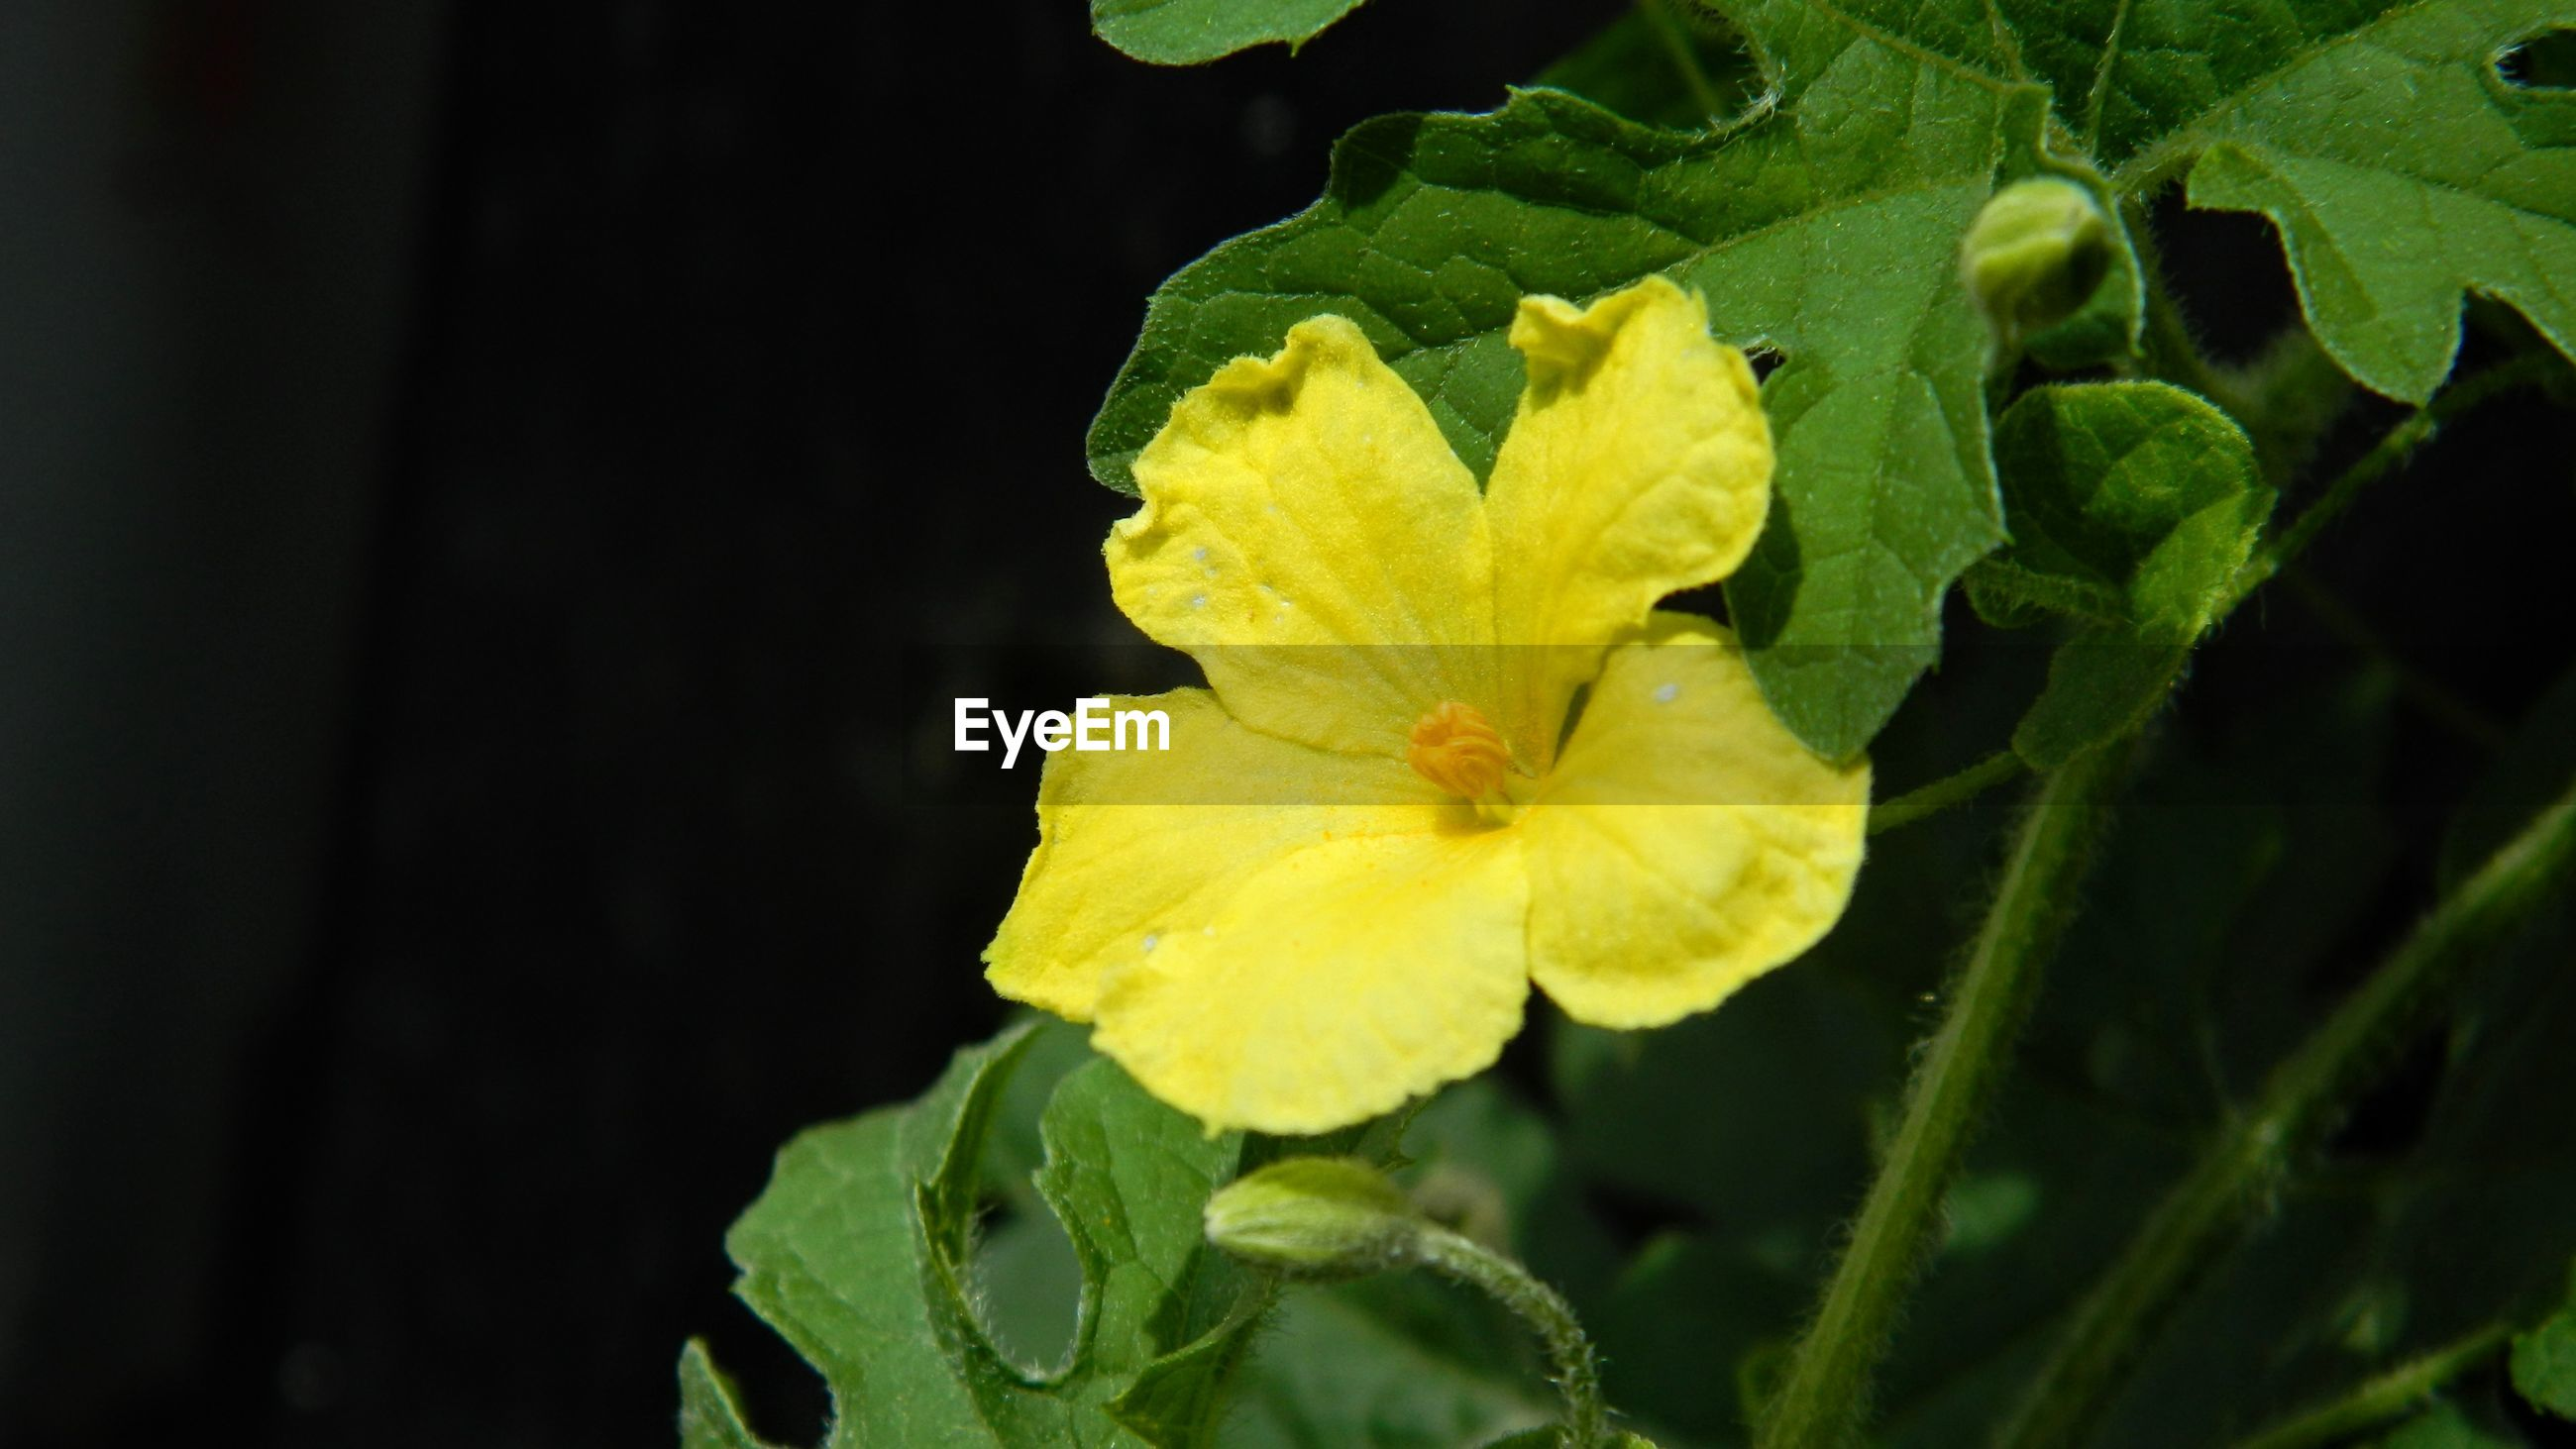 CLOSE-UP OF YELLOW FLOWER AND LEAVES